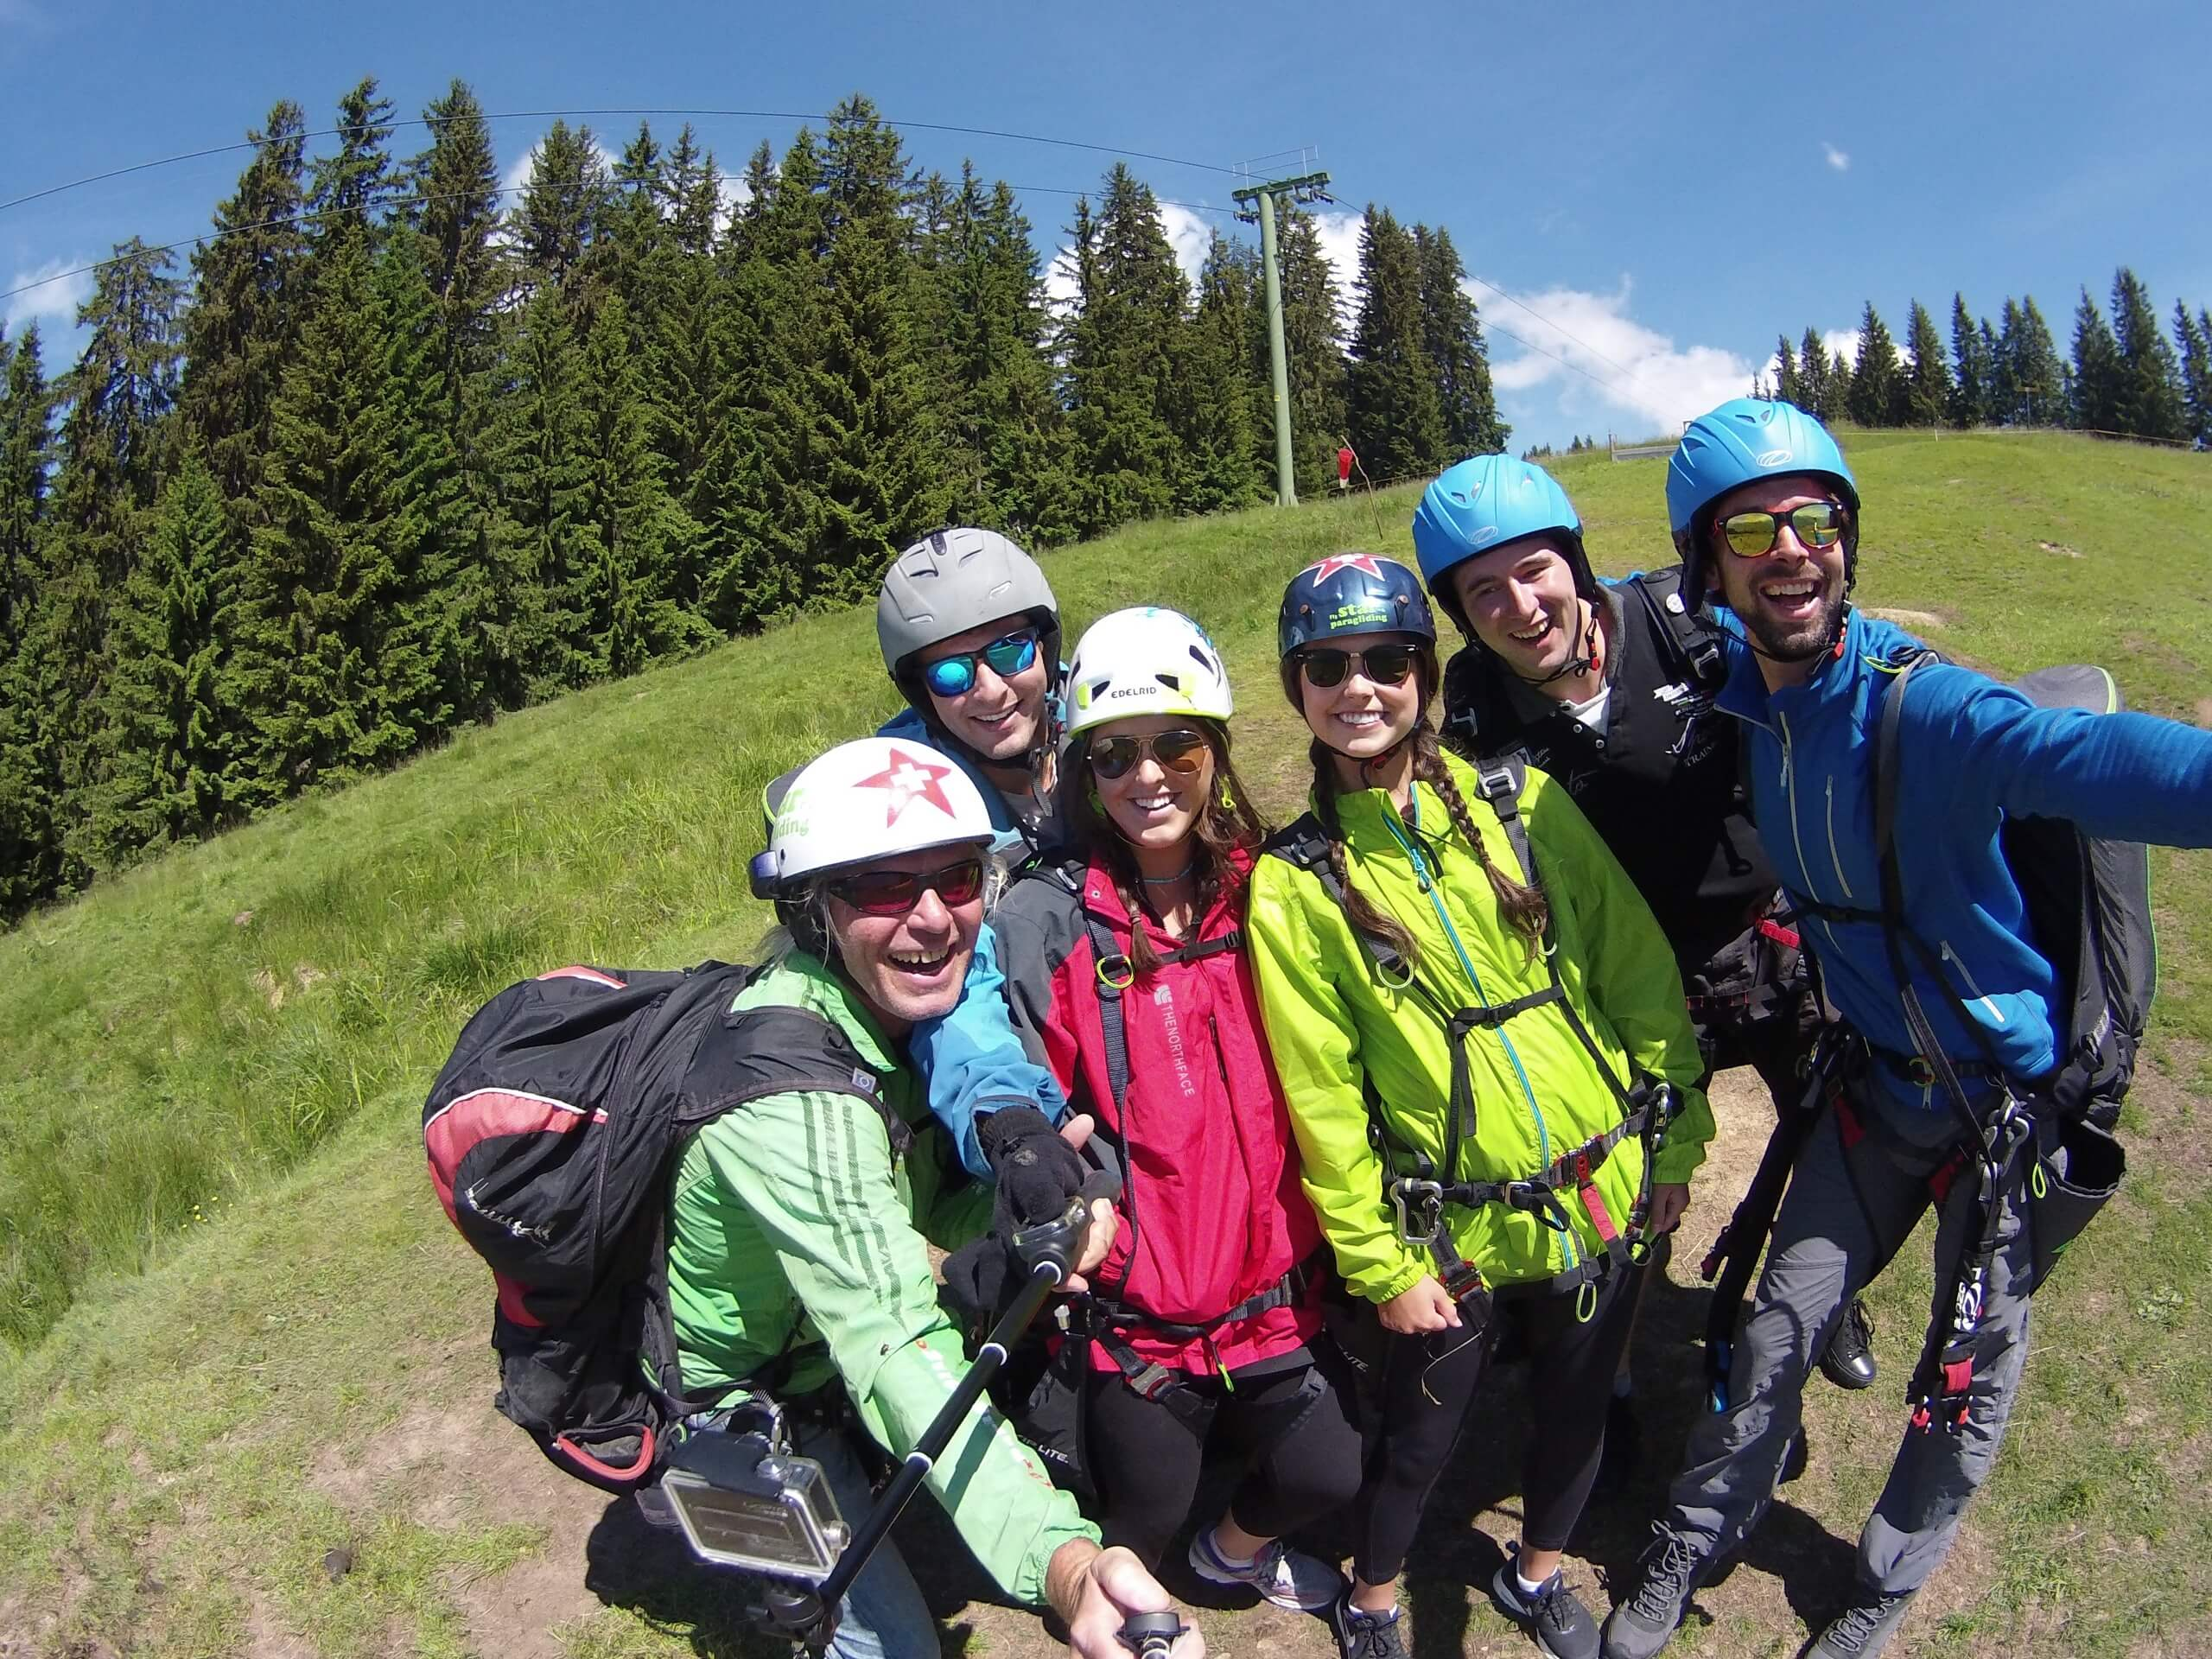 star-paragliding-start-fliegen-sommer